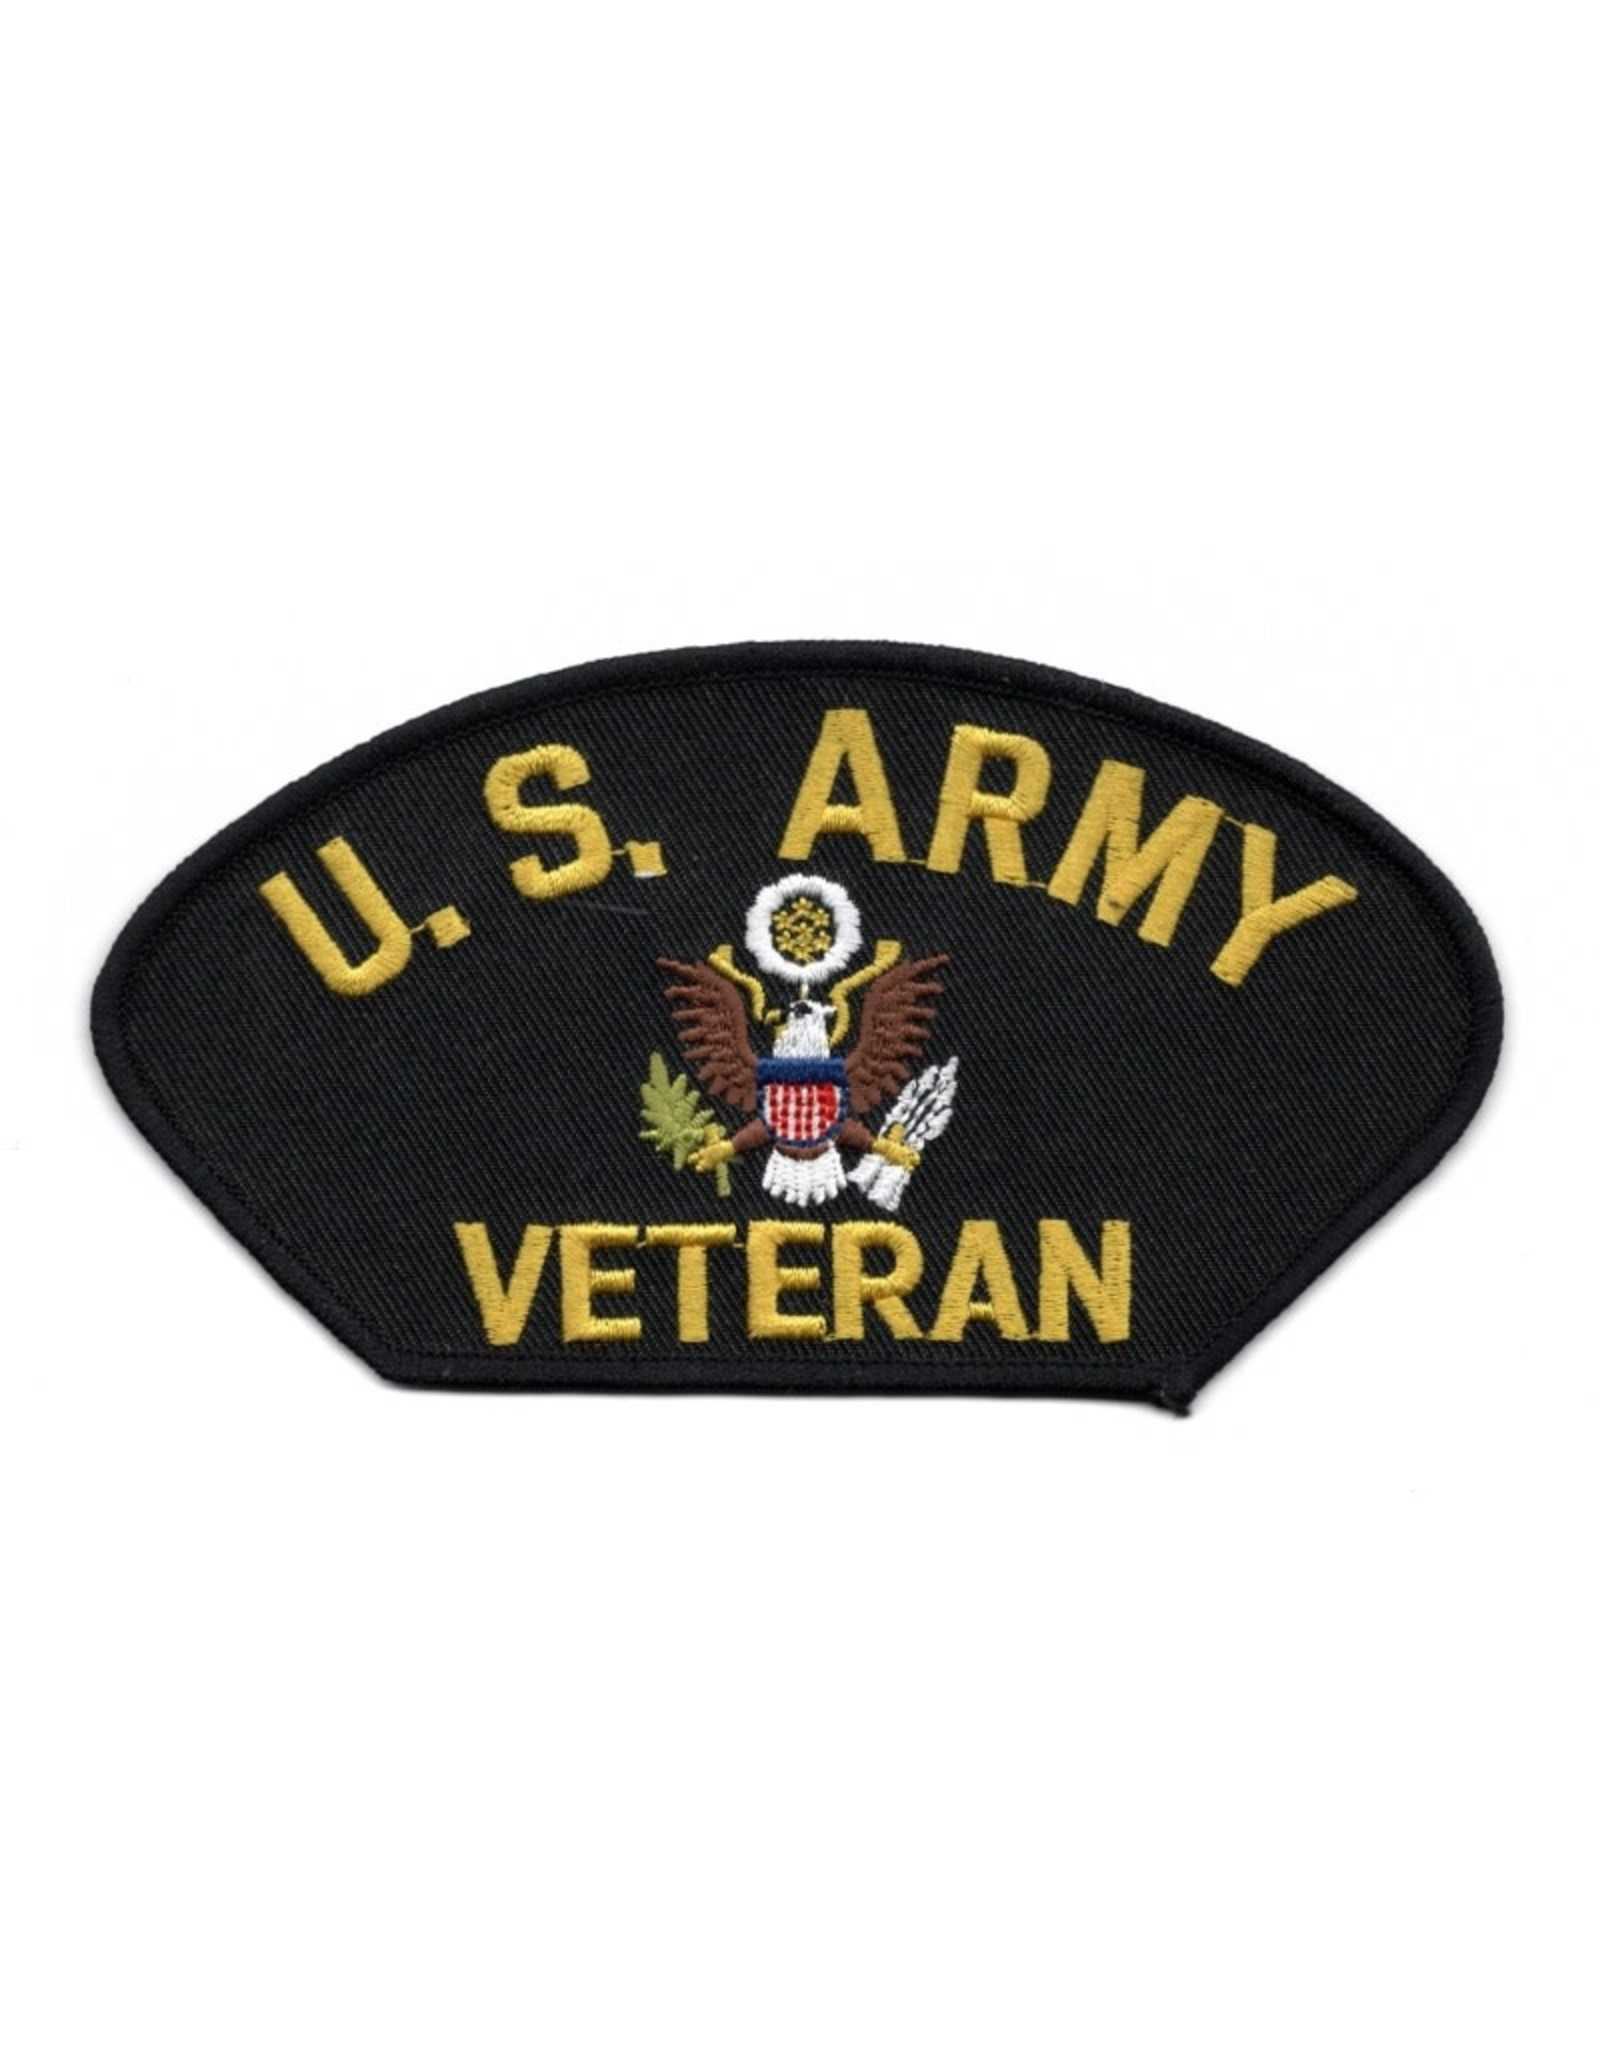 "MidMil Embroidered U.S. Army Veteran Patch with Seal 5.2"" wide x 2.7"" high"